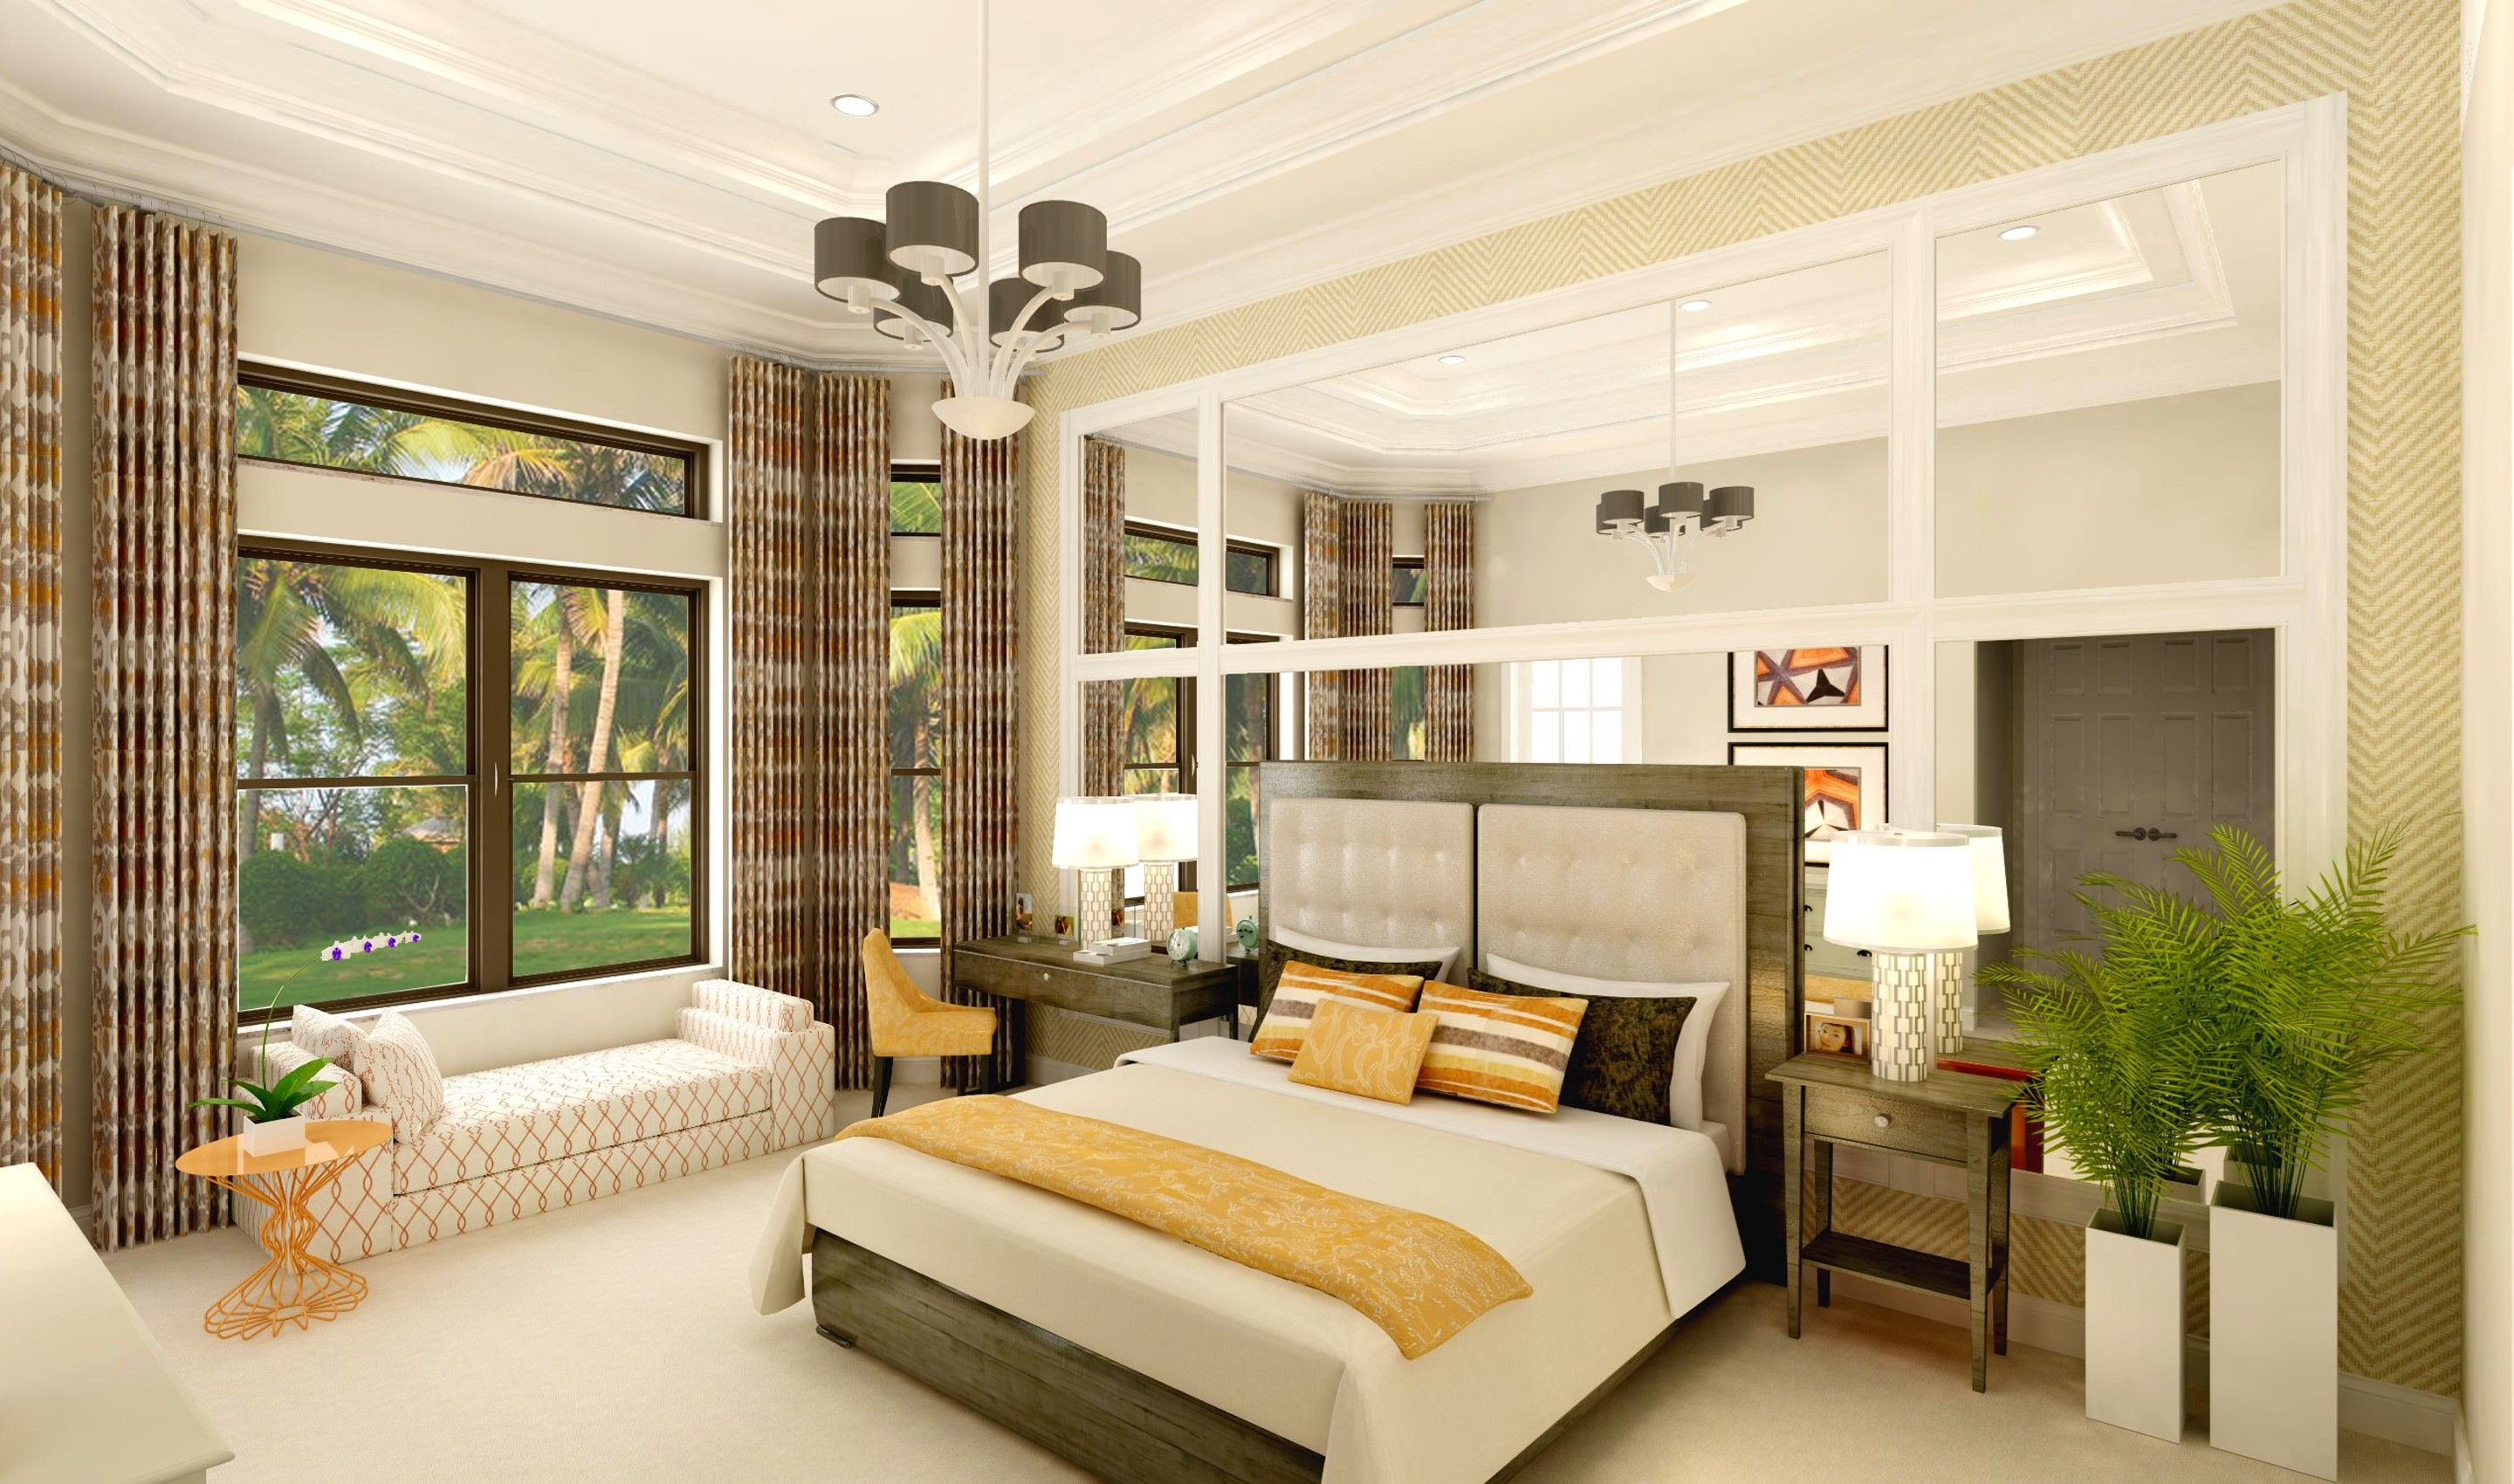 Bedroom featured in the Coral By K. Hovnanian's® Four Seasons in Broward County-Ft. Lauderdale, FL